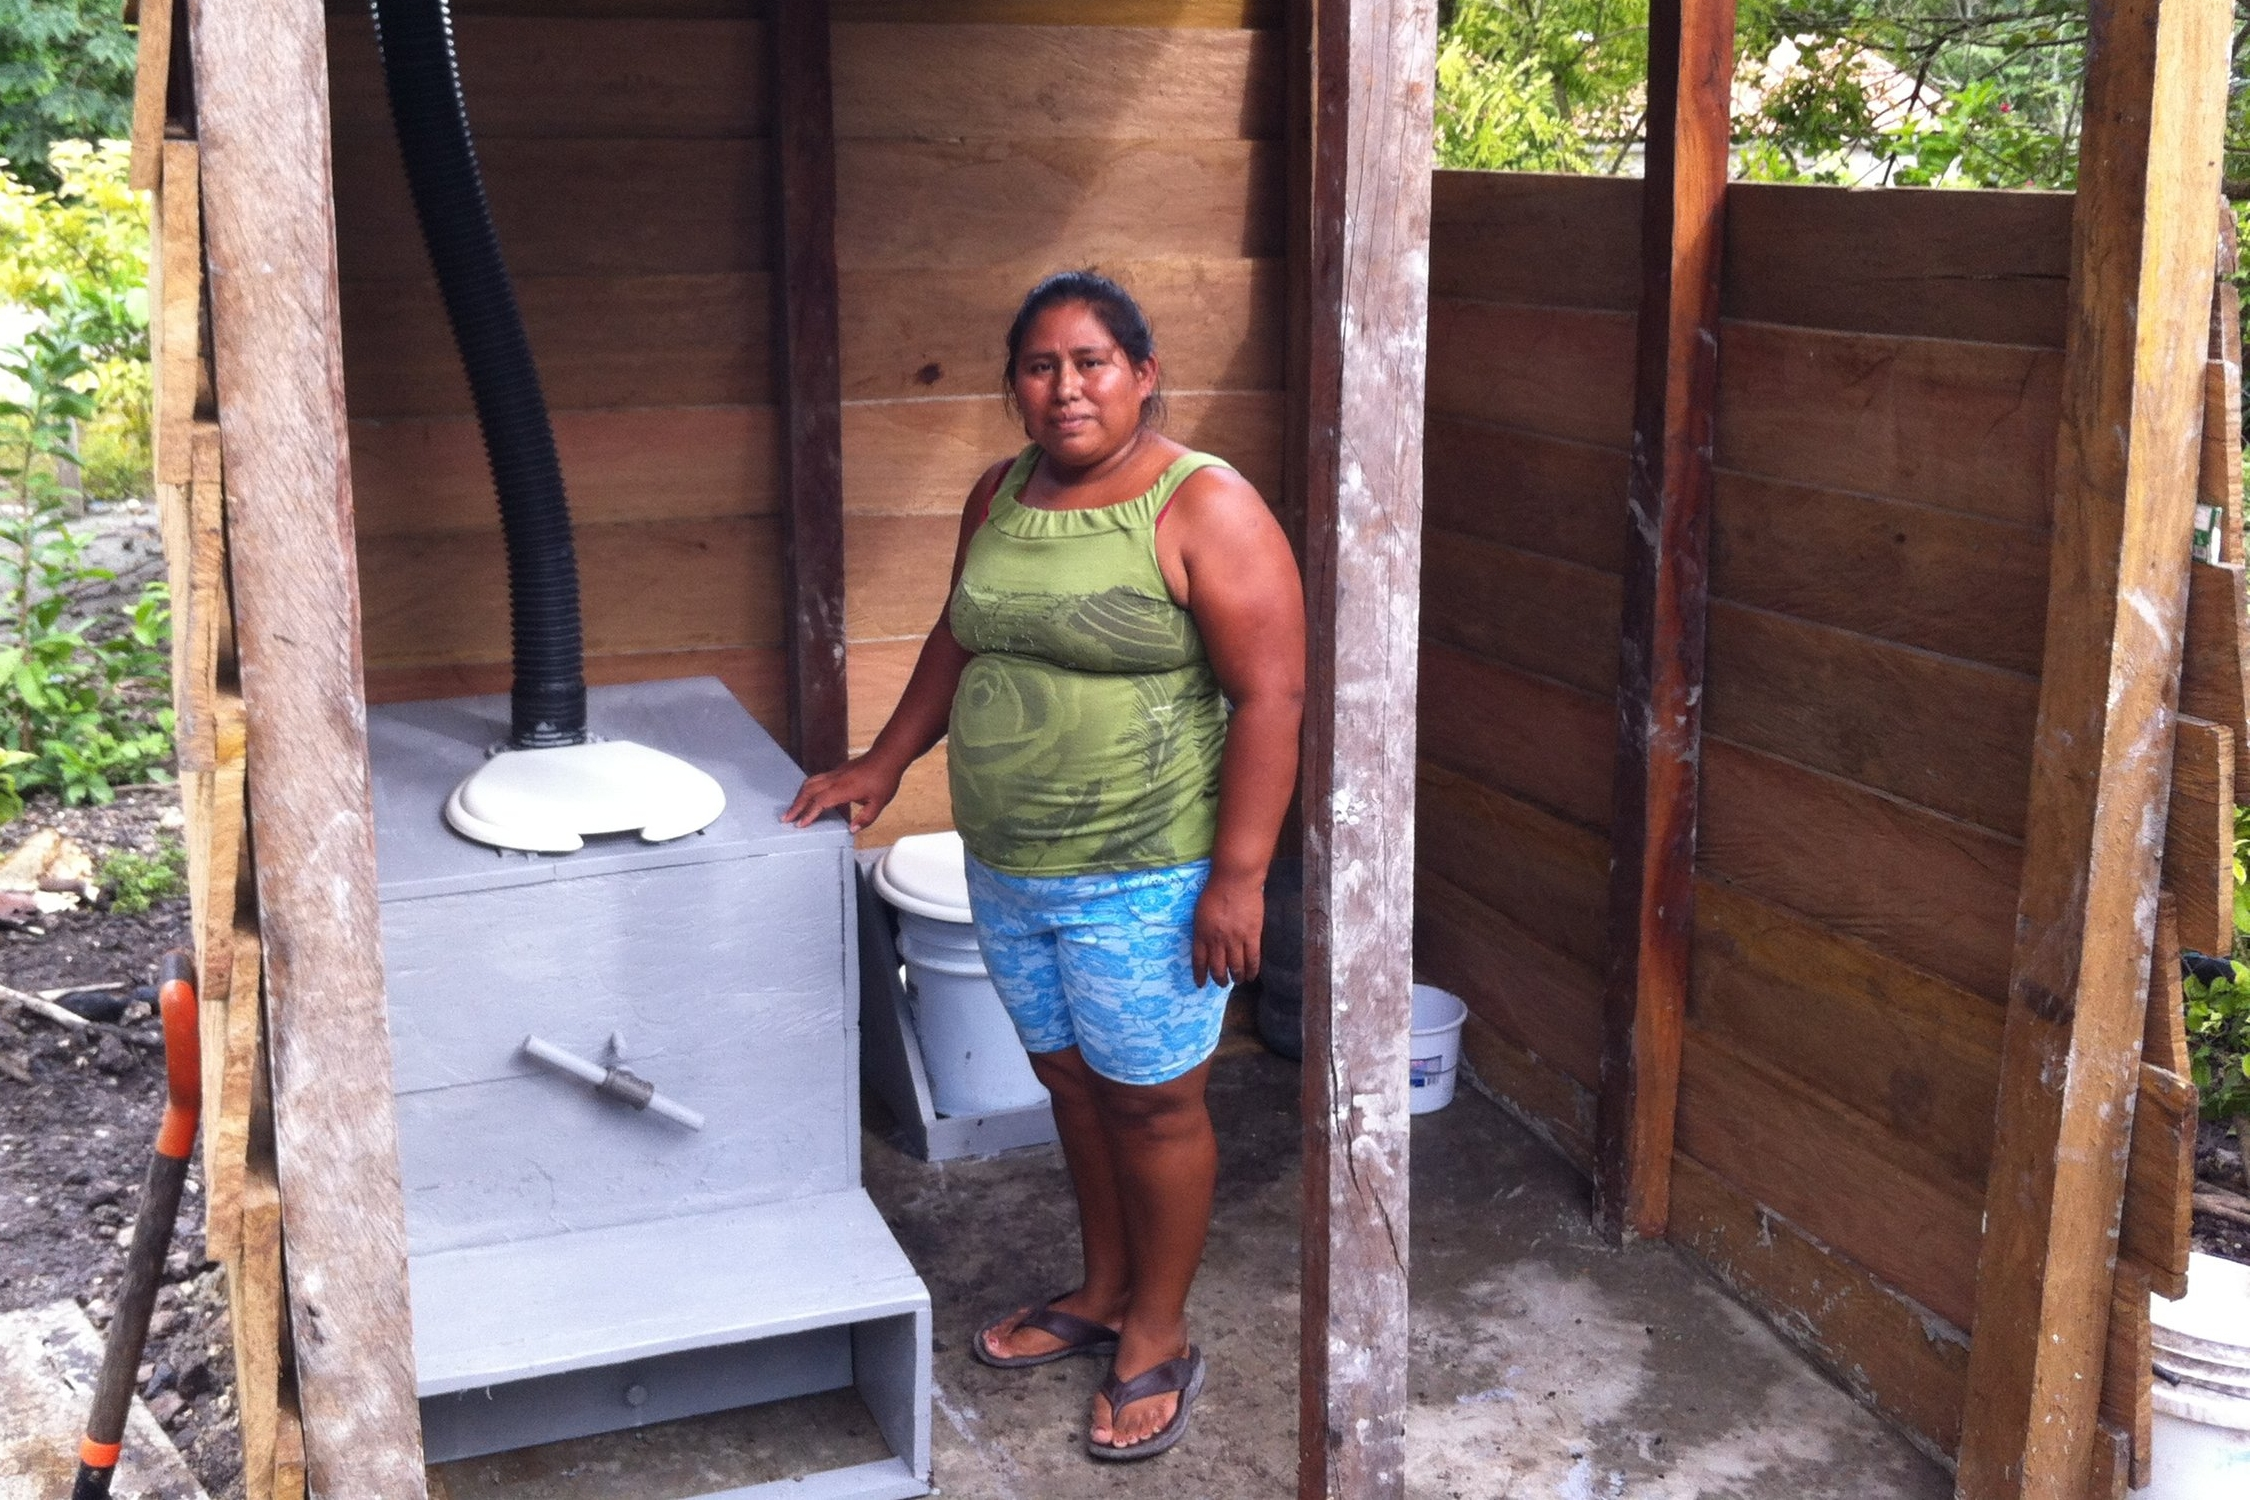 Campeche, Mexico - In 2014 TFP, along with local craftsmen and our NGO partner FHMM, installed of 5 composting toilets for 5 local families.